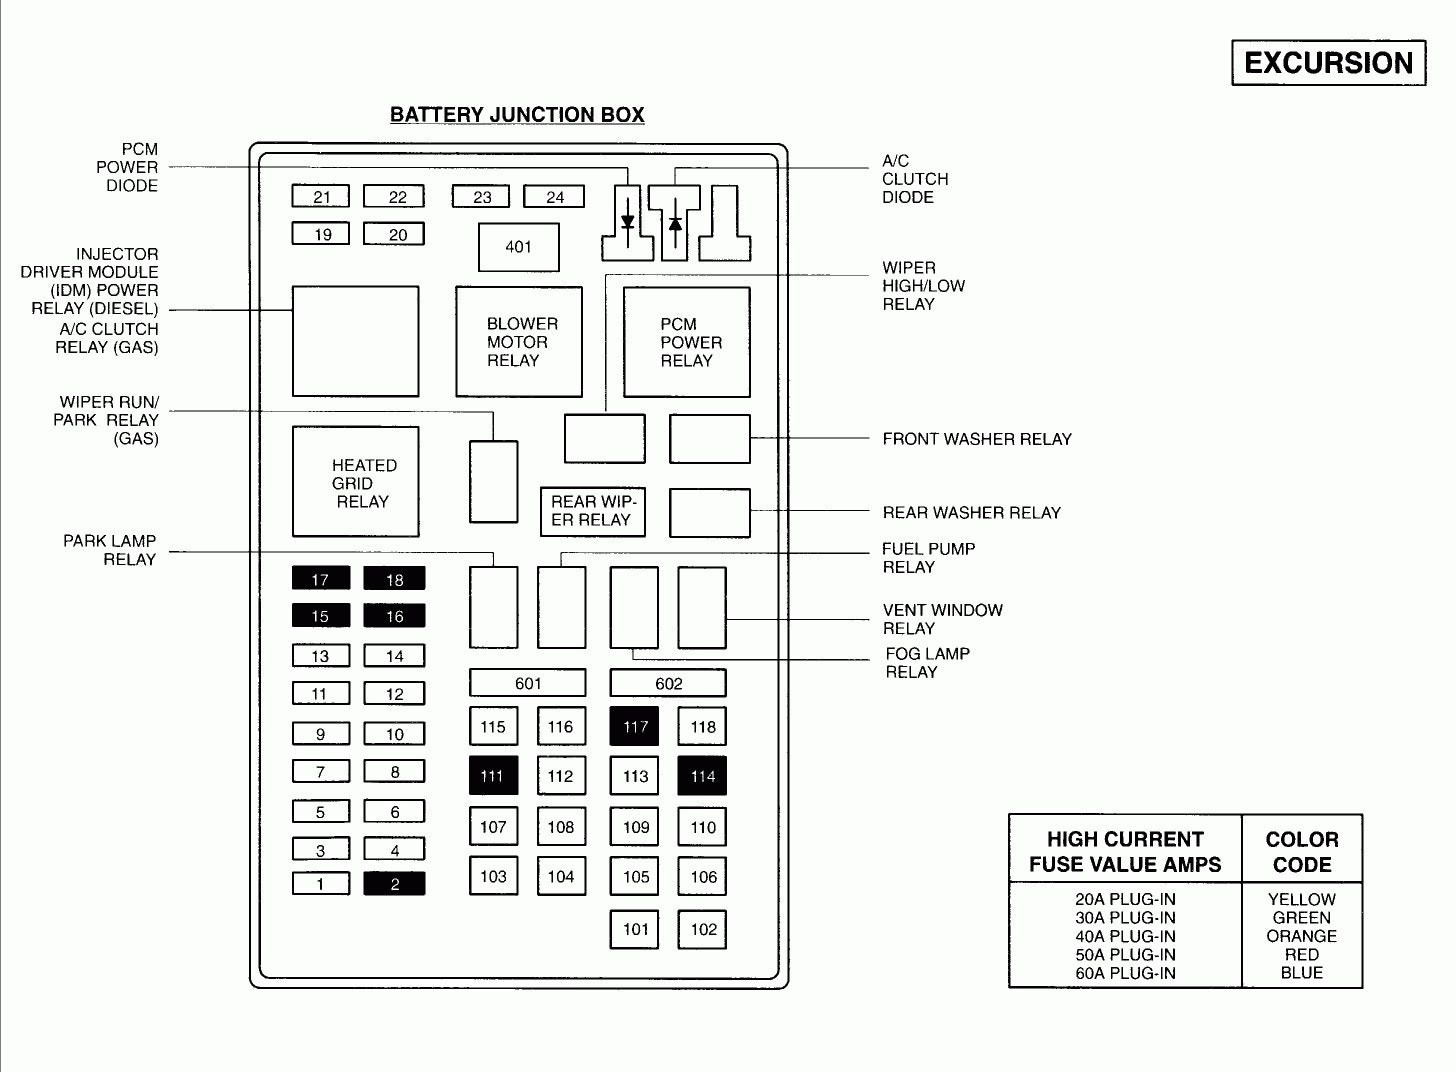 F250 7 3l Wiring Diagram 1999 Most Uptodate Info 2000 Ford F350 Diesel Fuse Peugeot Rt3 Library Rh 46 Materetmagistramagazine Org F 250 Headlight 2001 Diagrams